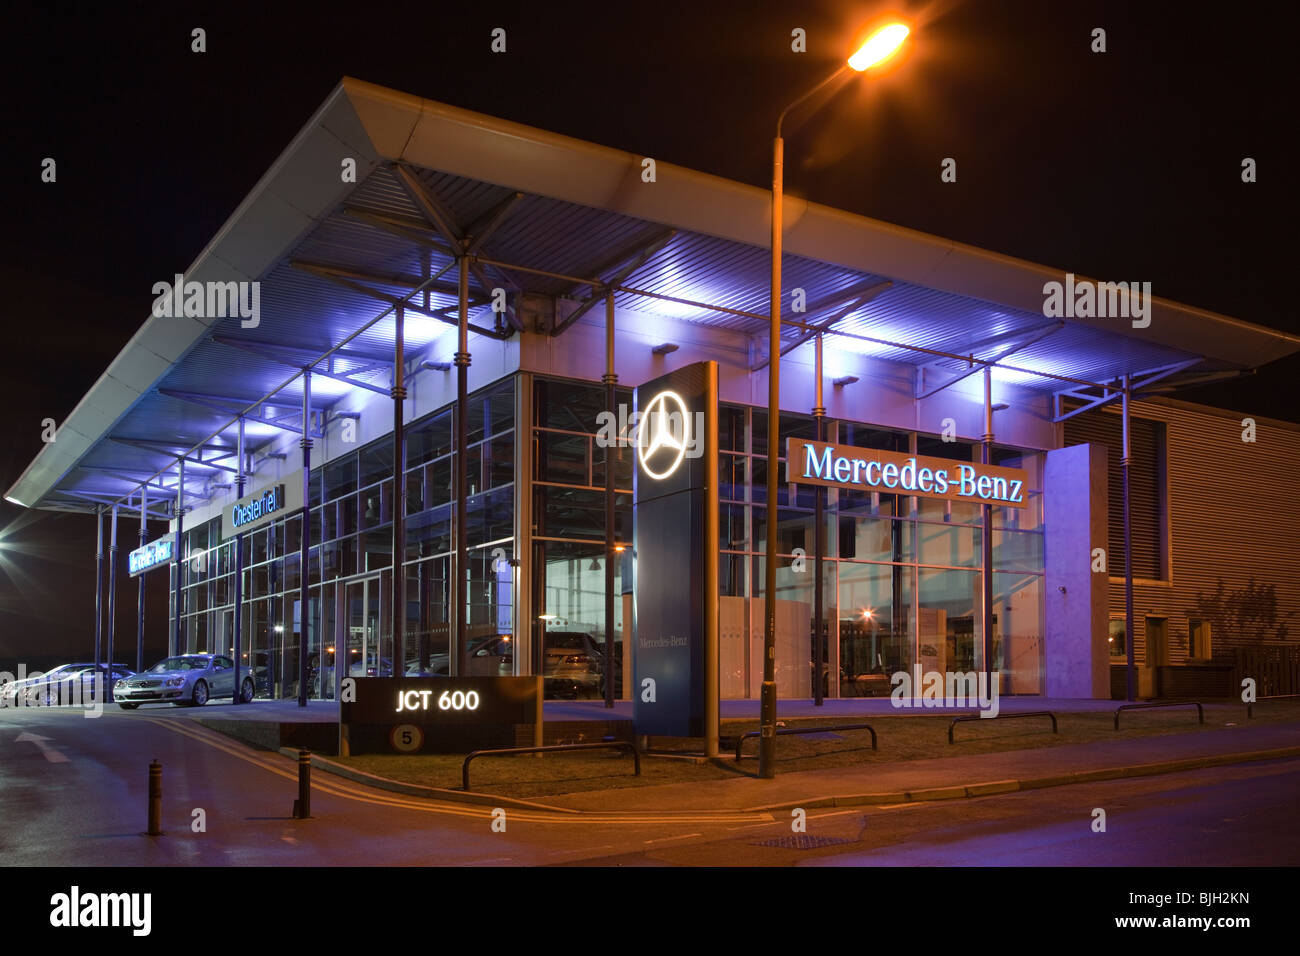 Mercedes benz dealership at night chesterfield derbyshire for Dealership mercedes benz